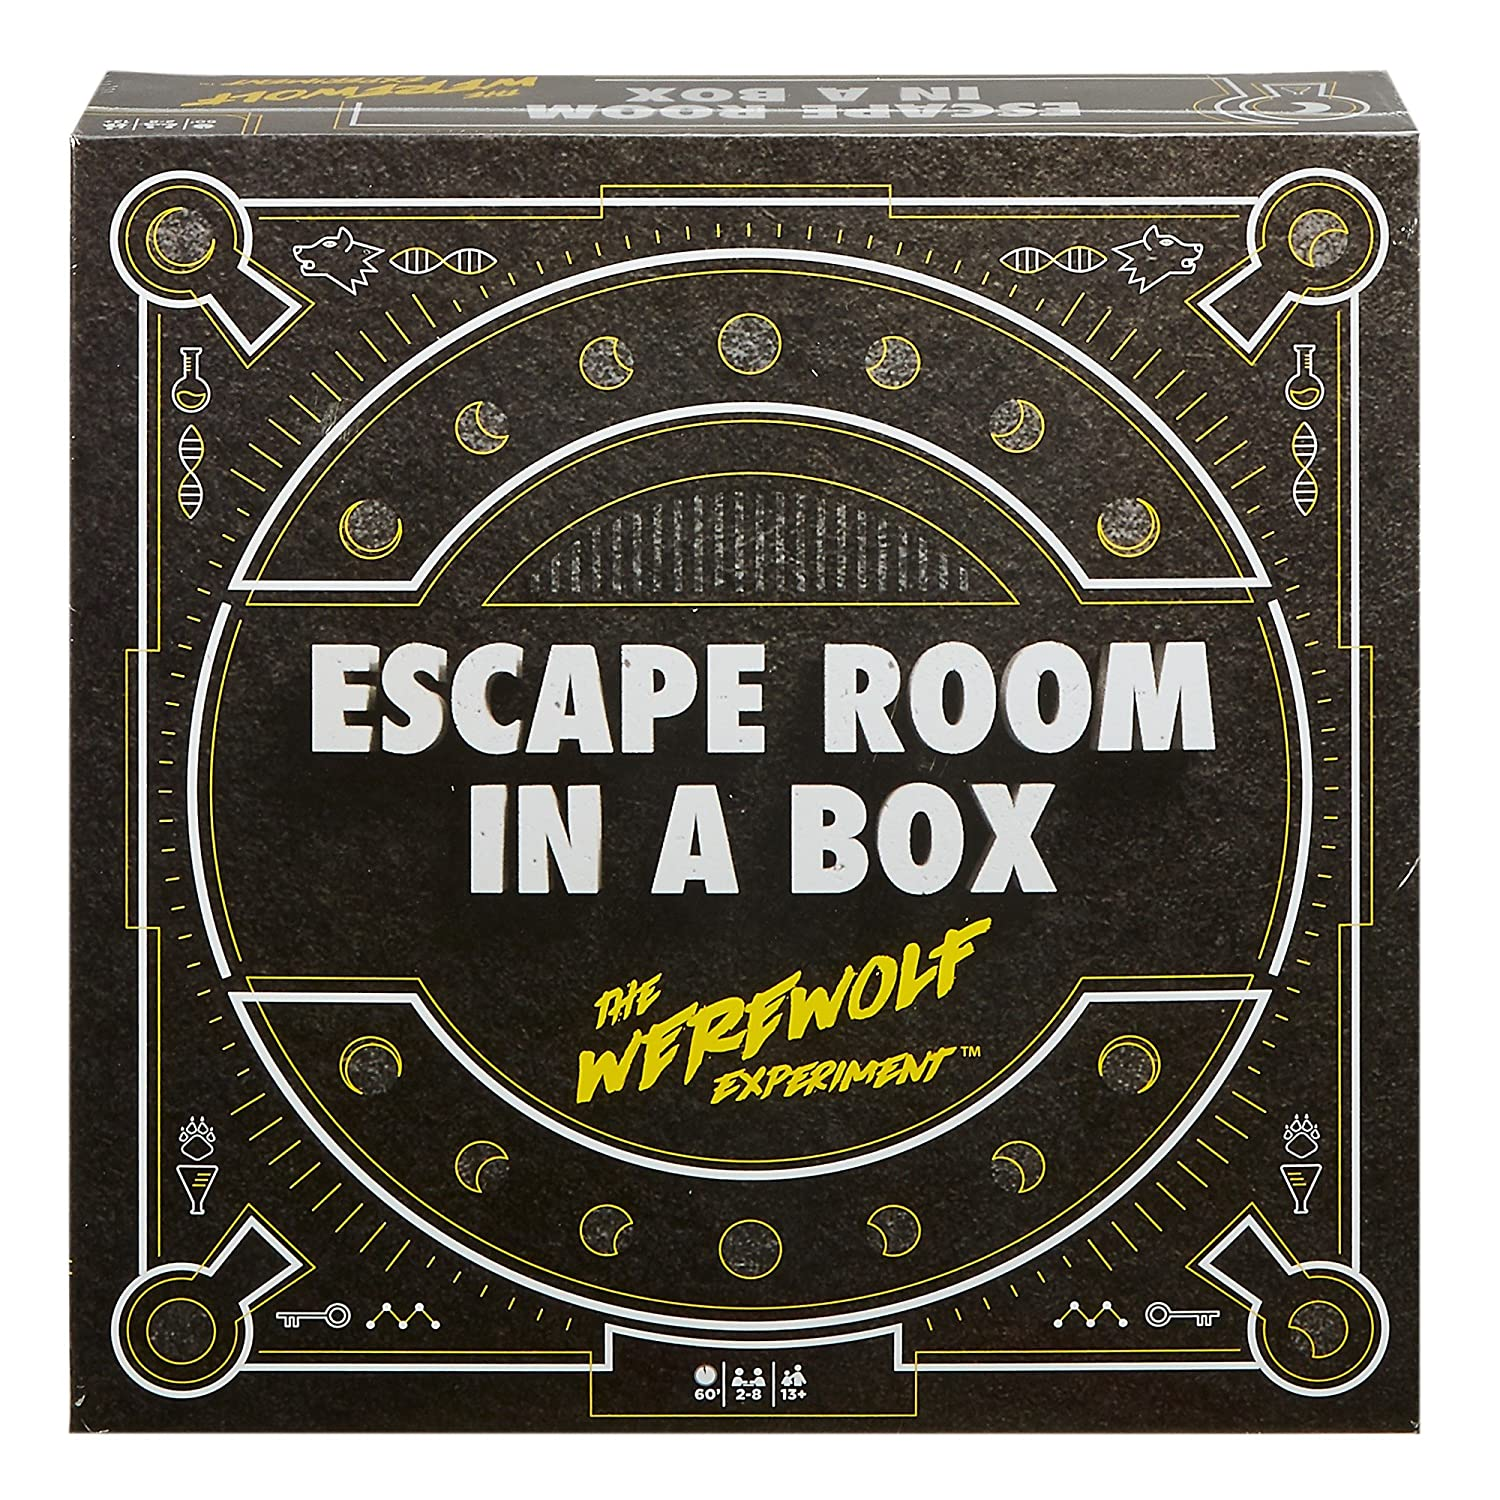 Mattel games escape room in a box the werewolf experiment mattel amazon co uk toys games